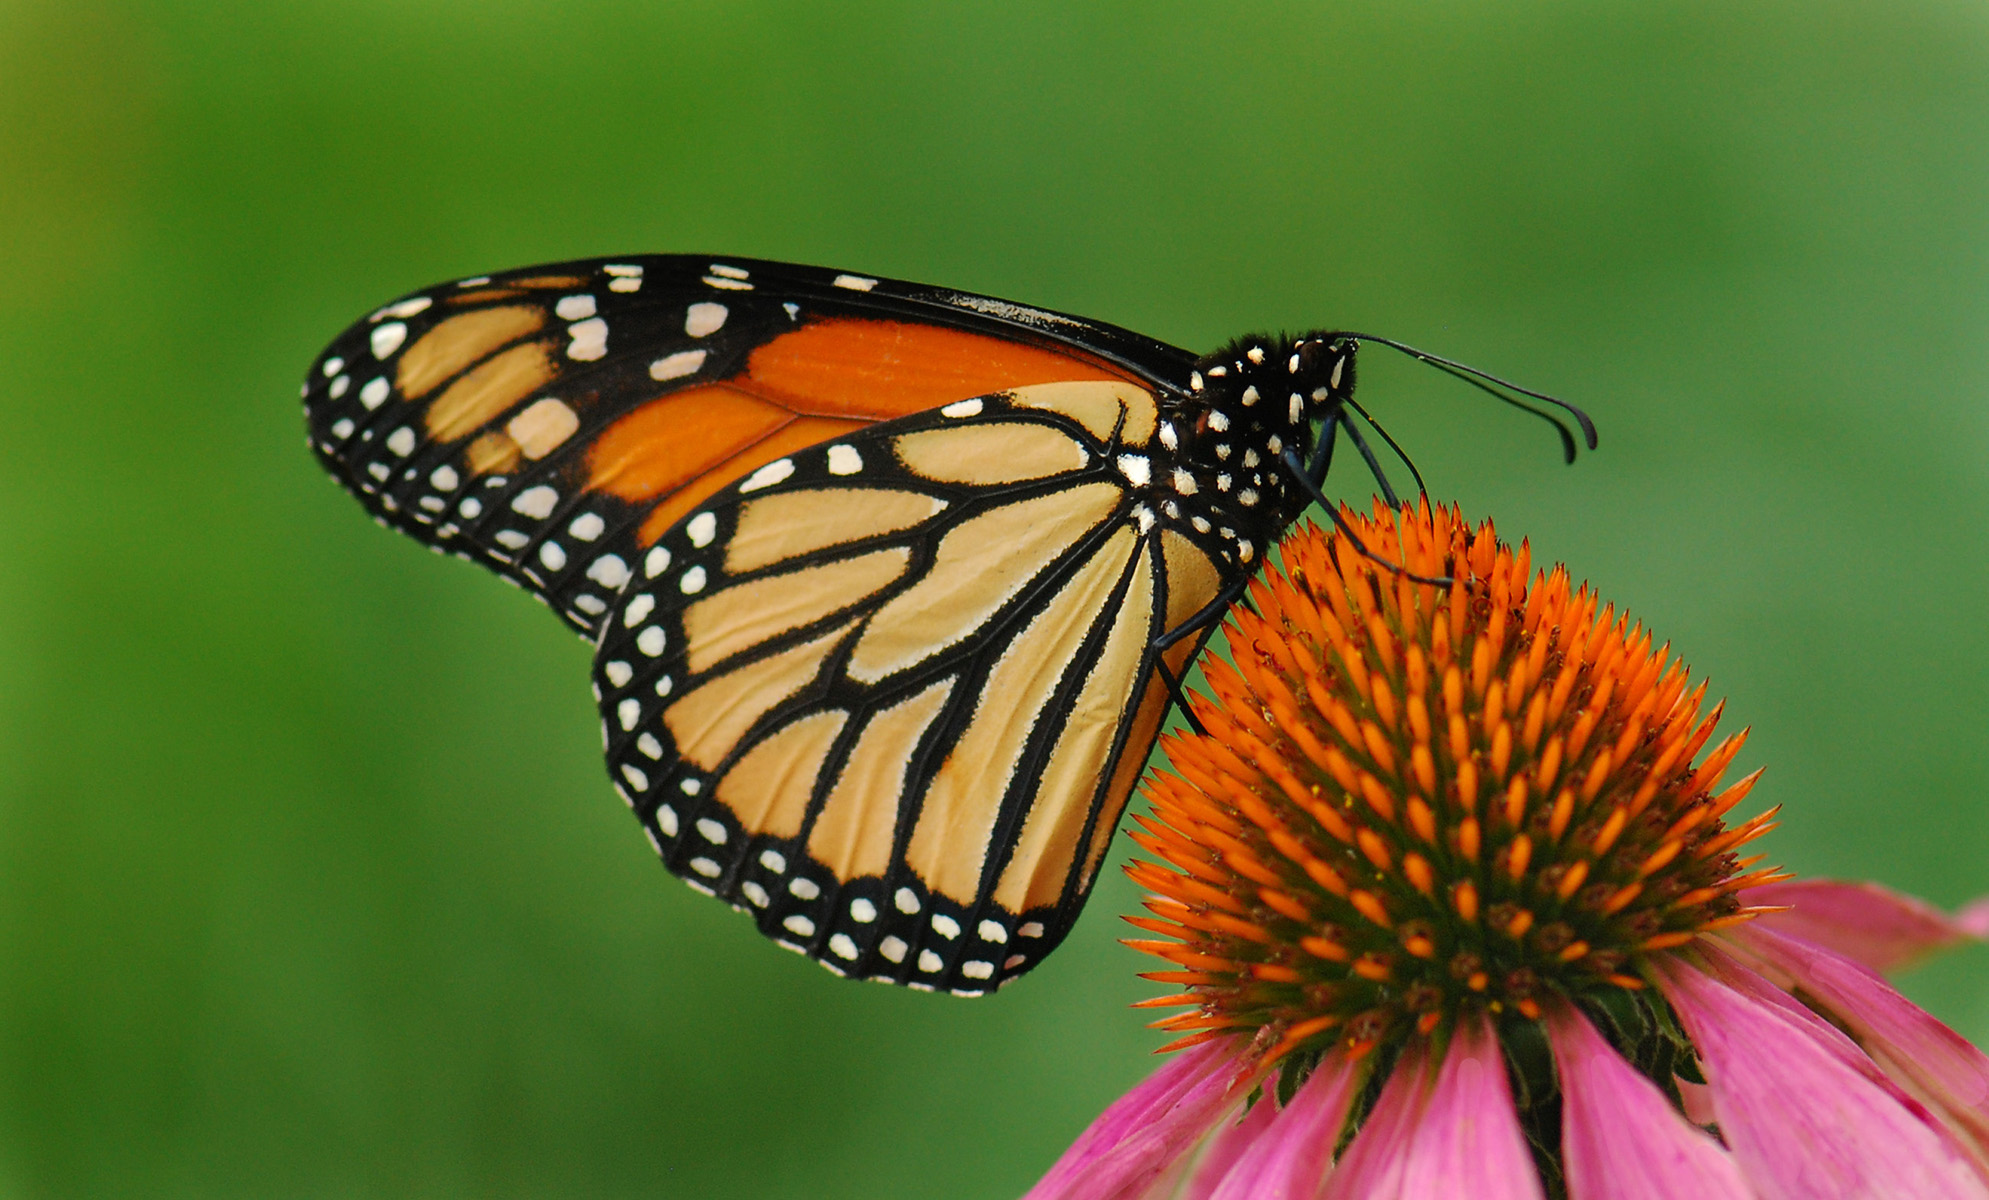 It's Time for Texas' Second Annual Pollinator BioBlitz